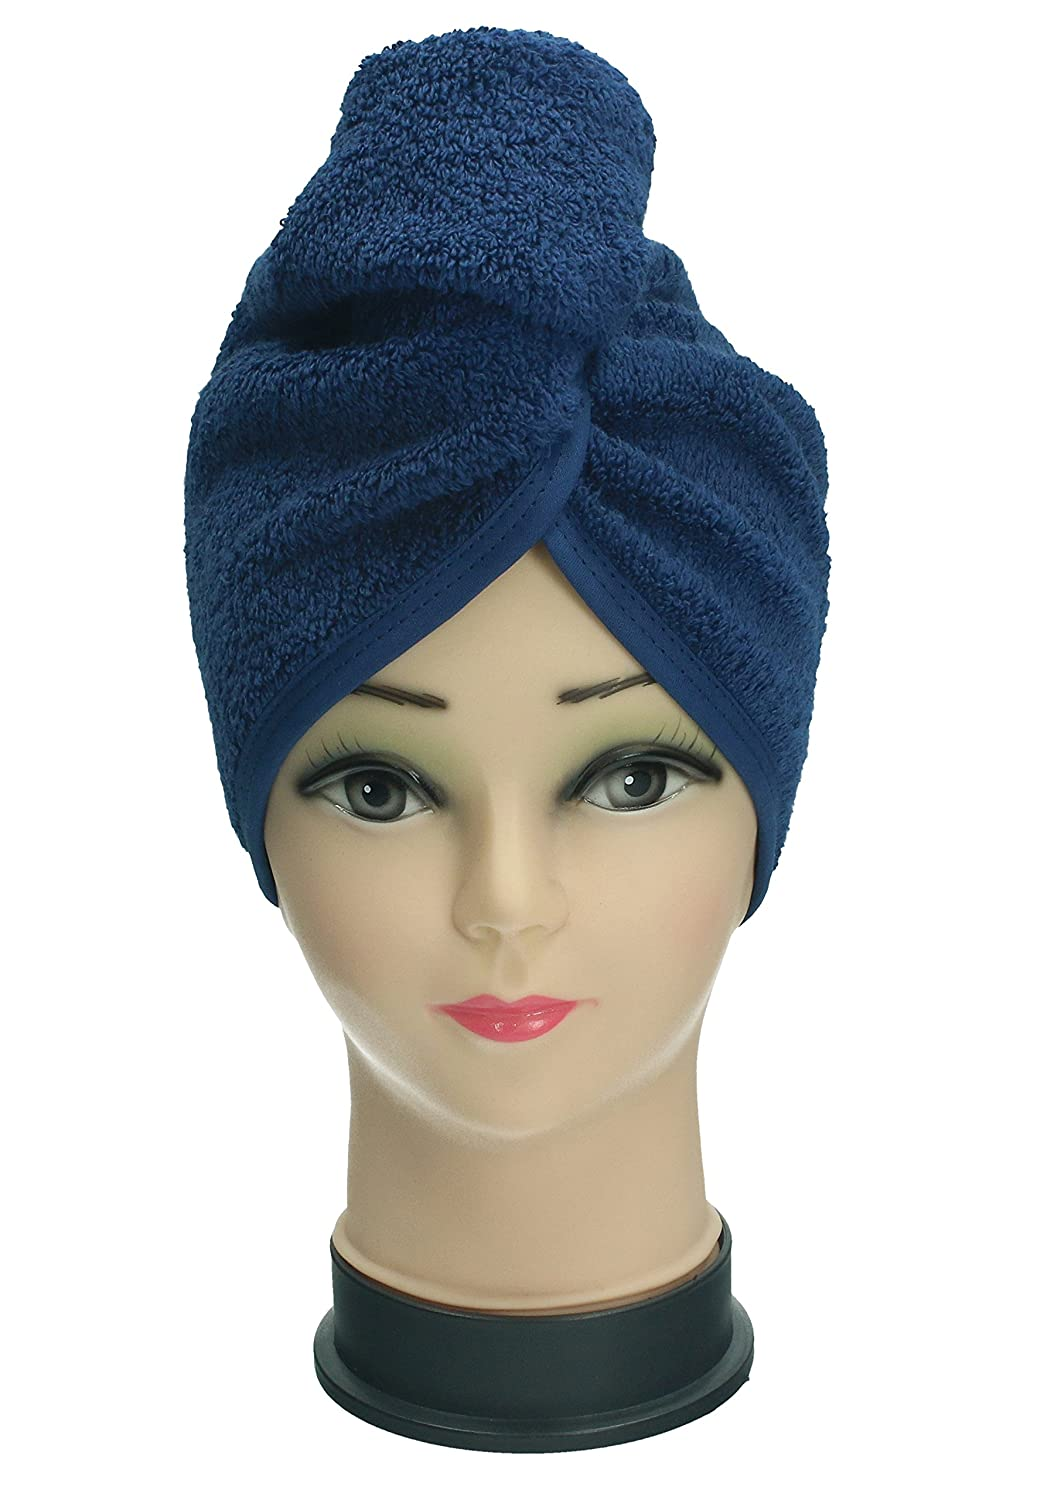 BETZ Set di 2 asciugamani turbante asciugamano turbante cuffia turbante 100% cotone colore blu scuro